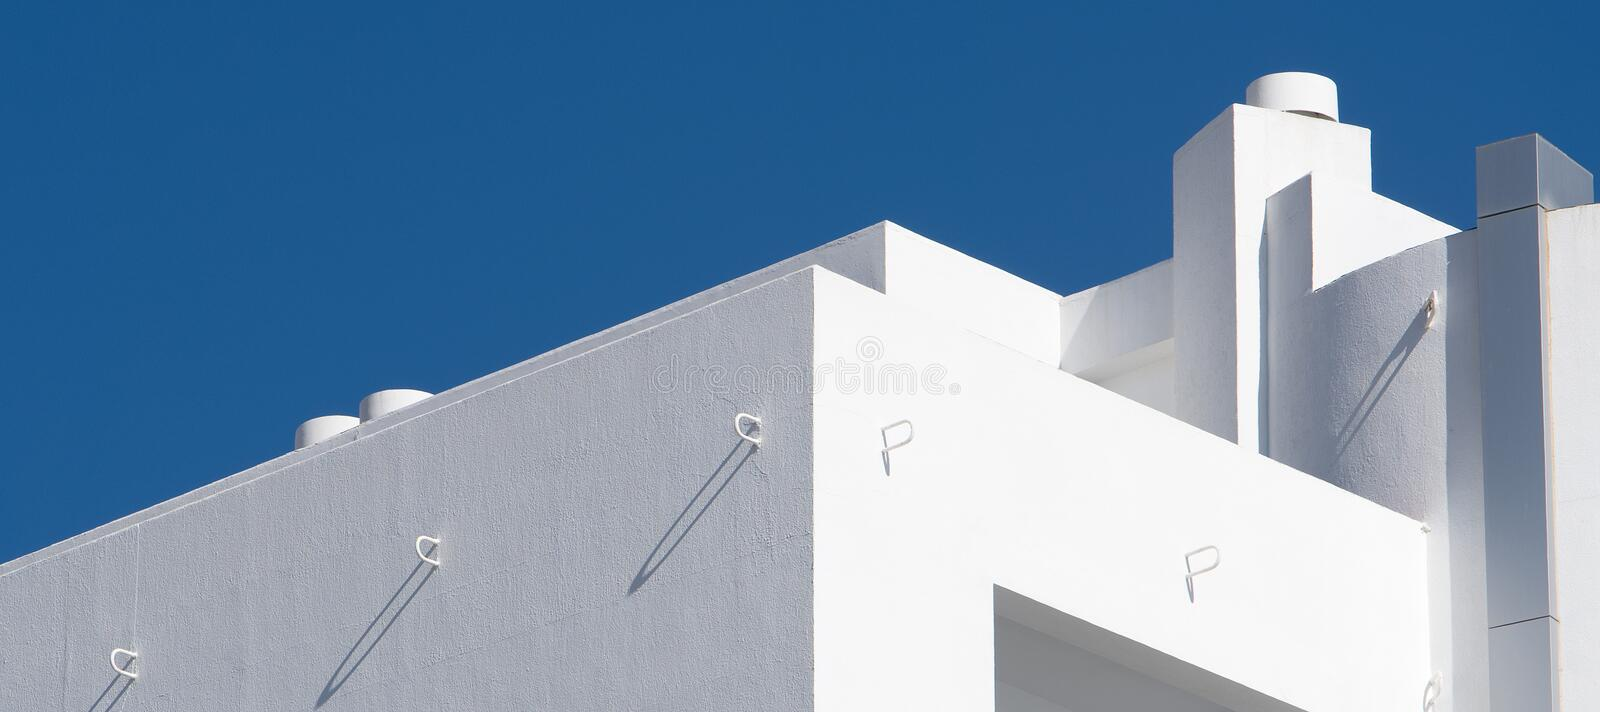 Lines and angles of modern building. Abstract. The lines and angles at the top of a modern building, contrasting with the beautiful blue  Mediterranean sky royalty free stock photos